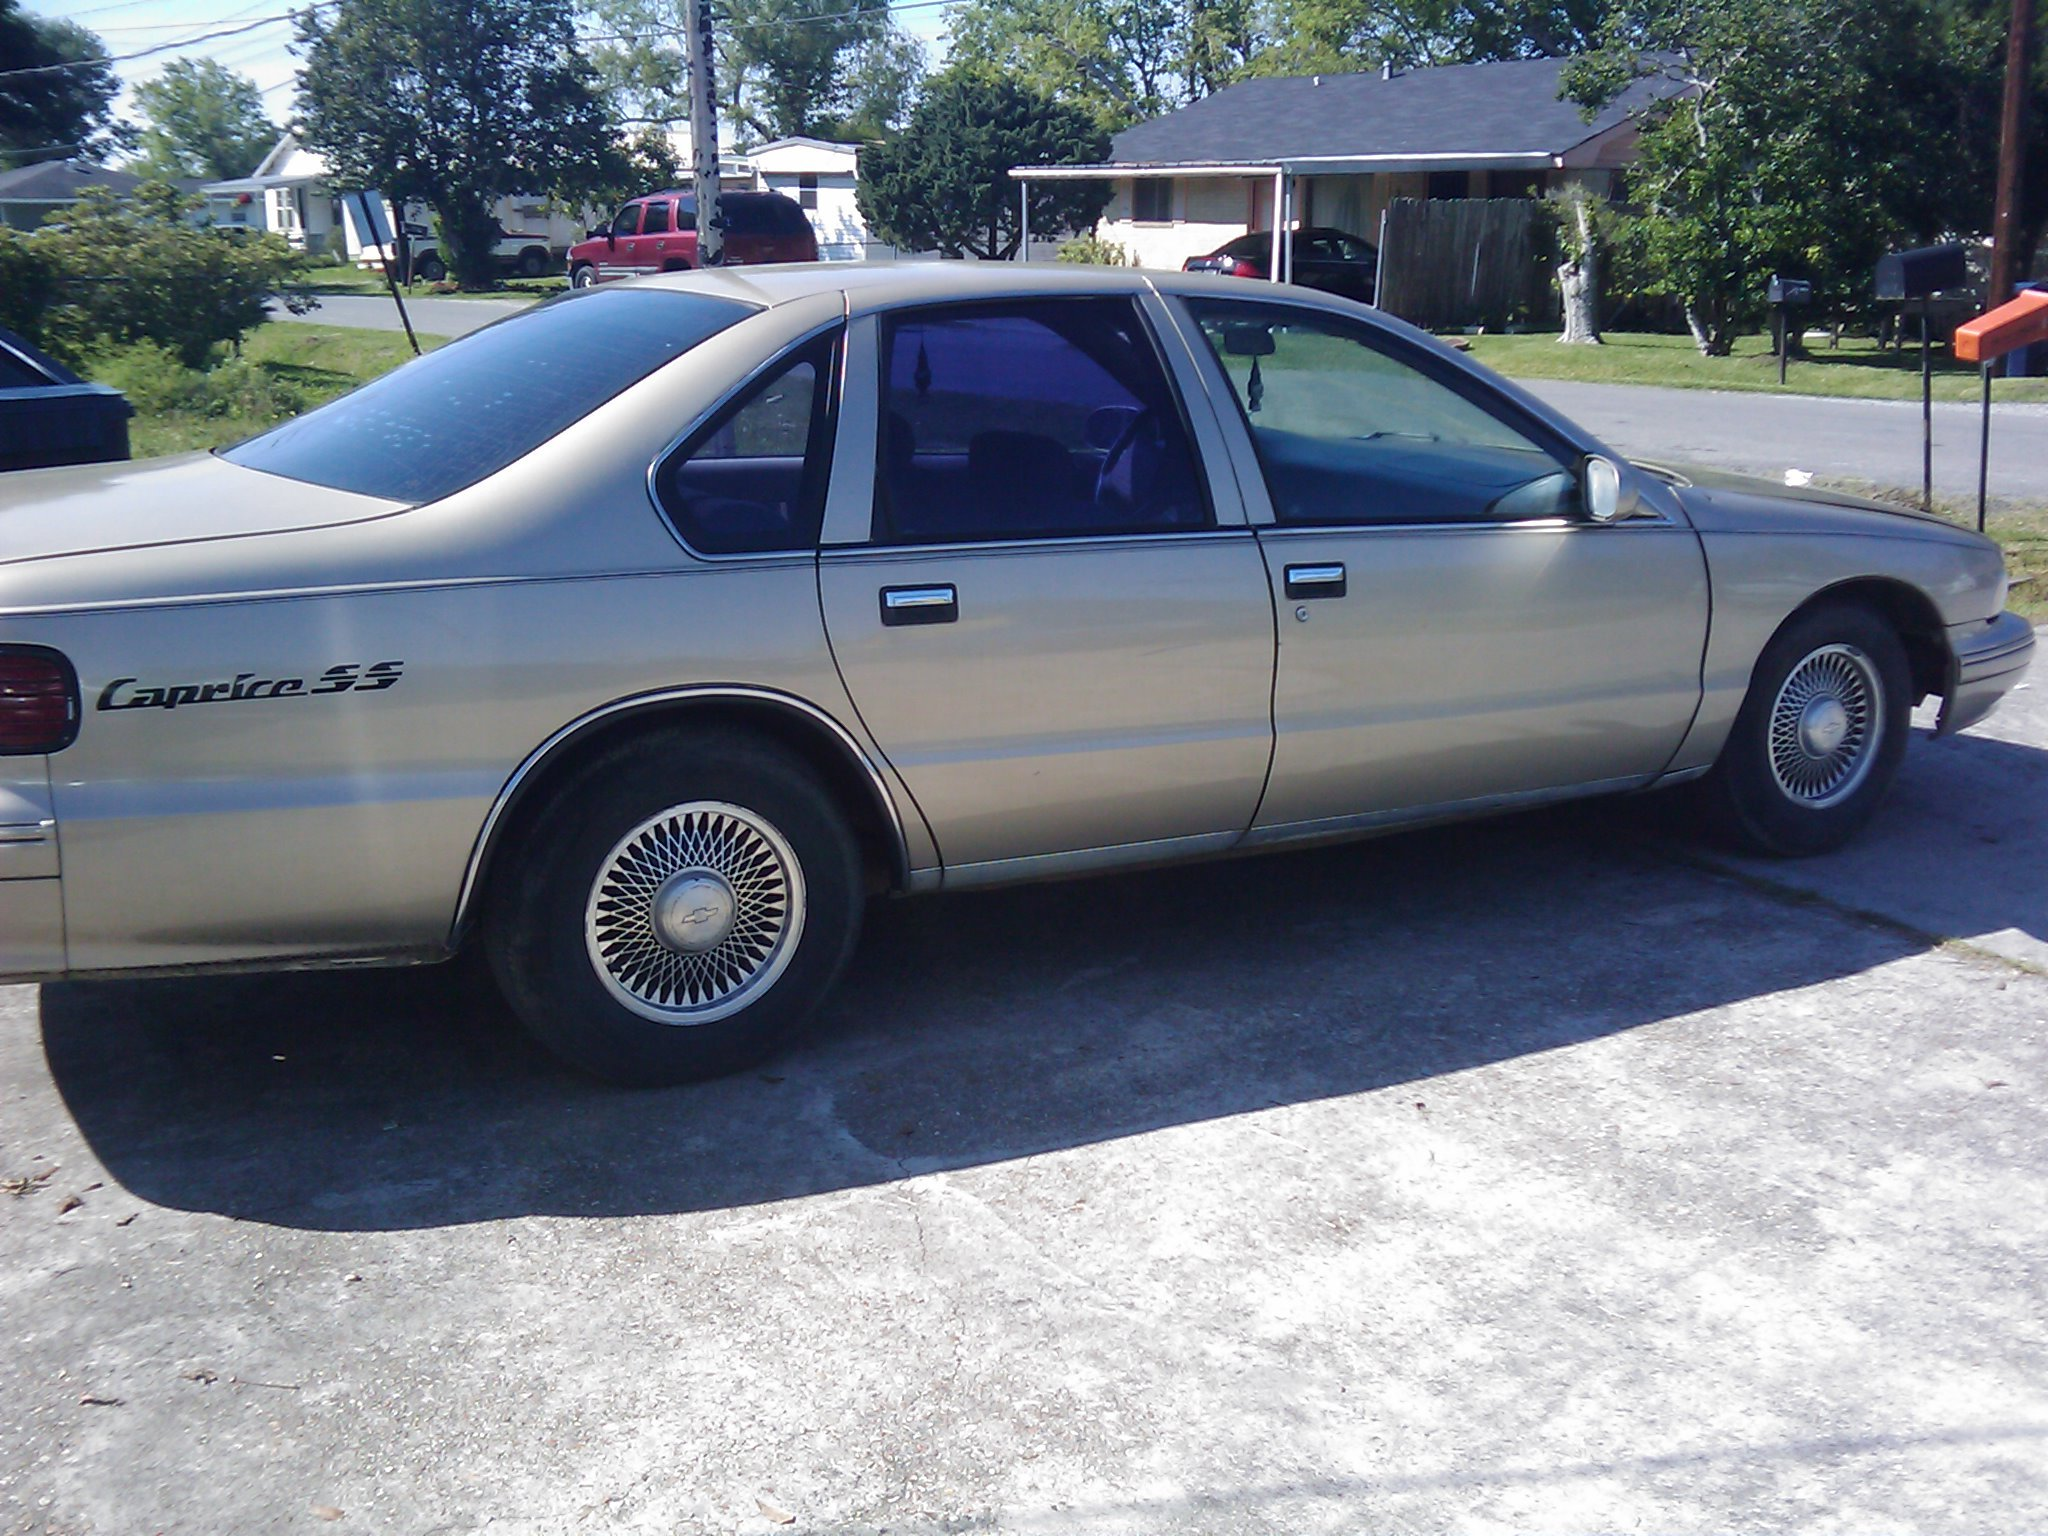 Another b_i_g_cg 1995 Chevrolet Caprice post... - 12909173